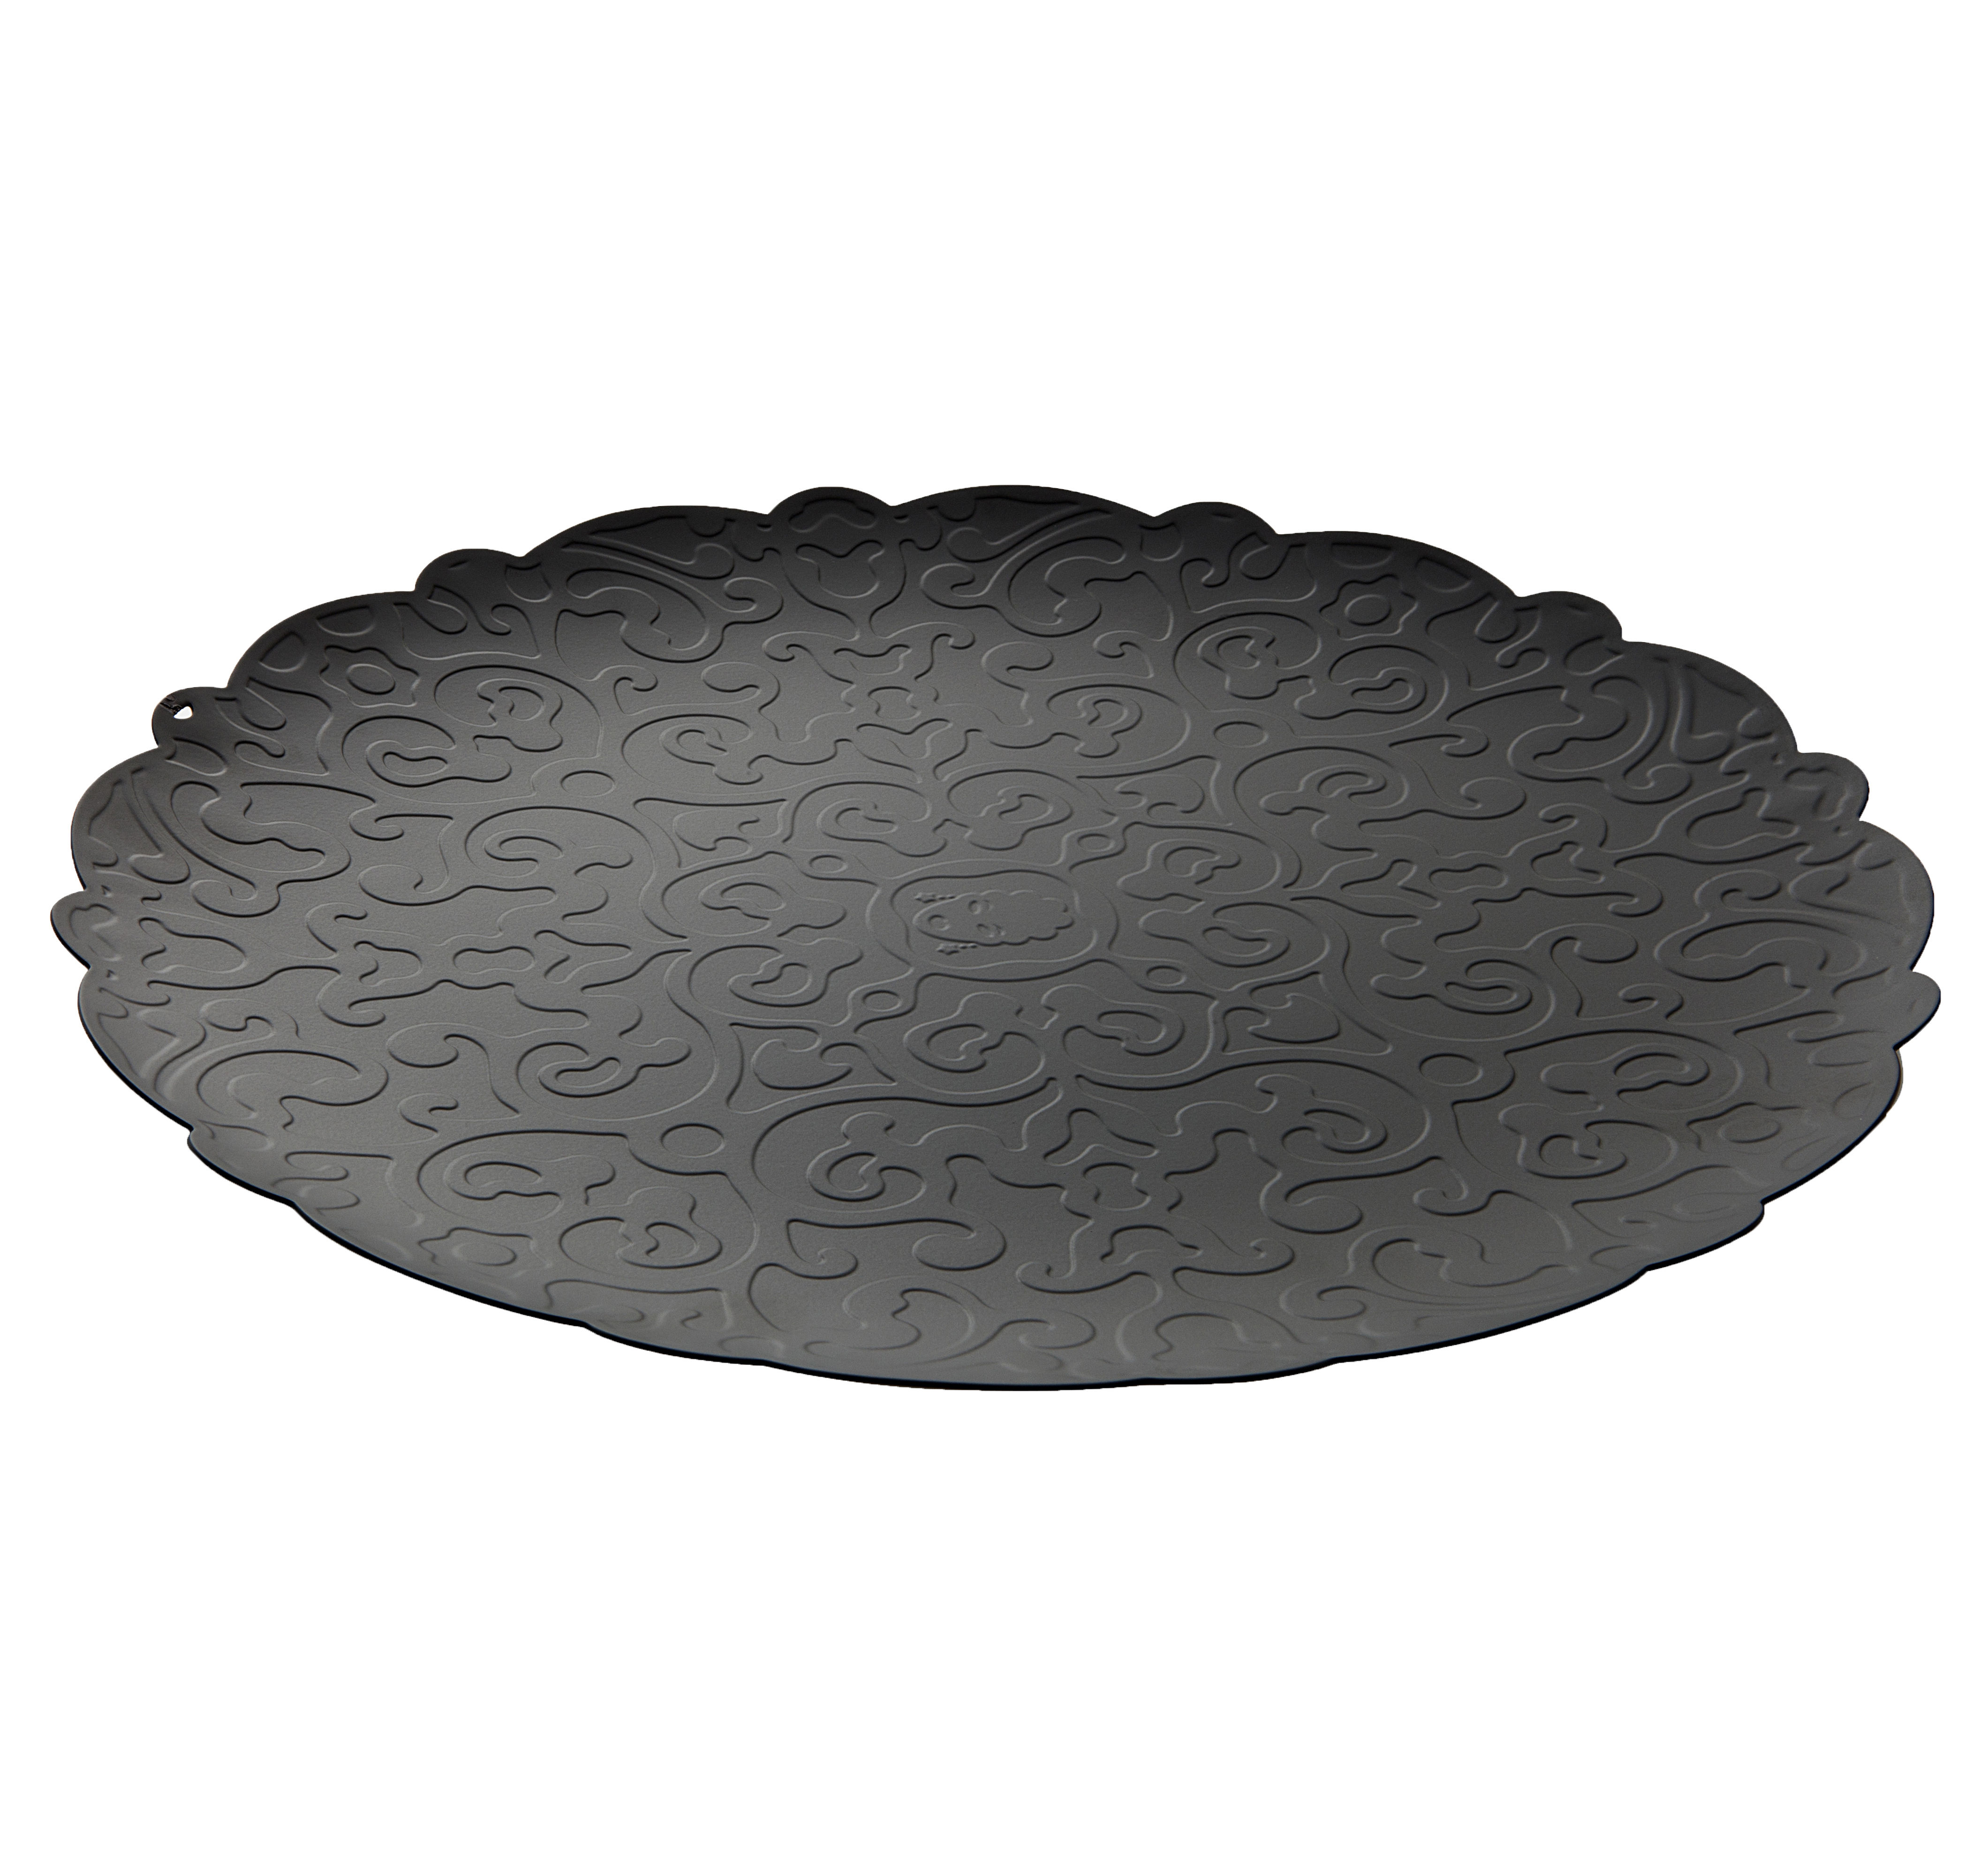 Tableware - Trays - Dressed Tray - Round Ø 35 cm by Alessi - Black - Stainless steel epoxy coloration resin